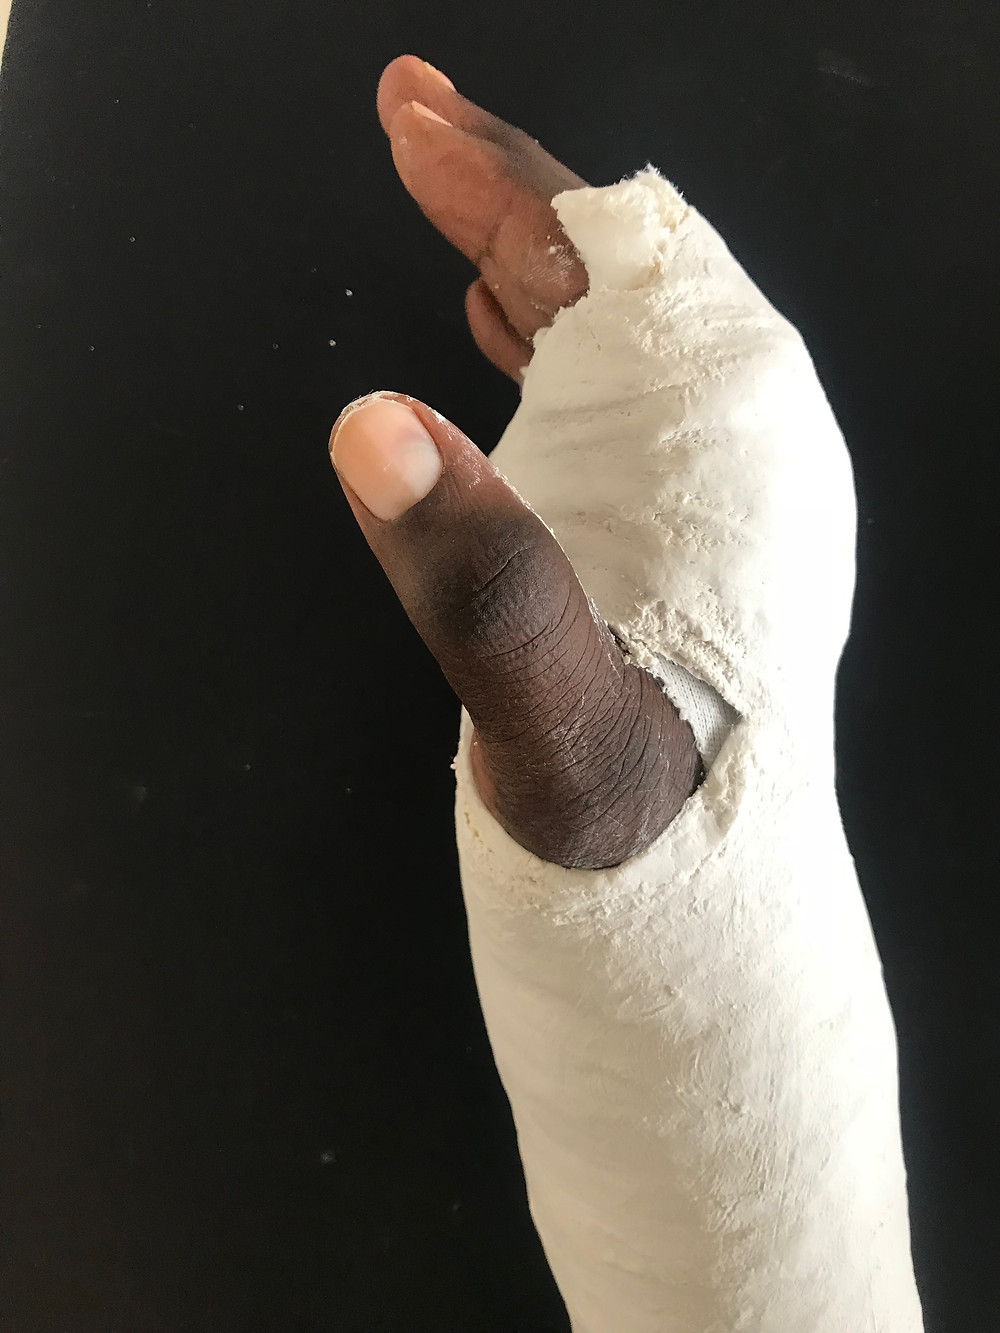 An Intrinsic minus cast was applied to Kwame's hand to re-establish a normal pattern of motion and improve joint mobility through active re-direction